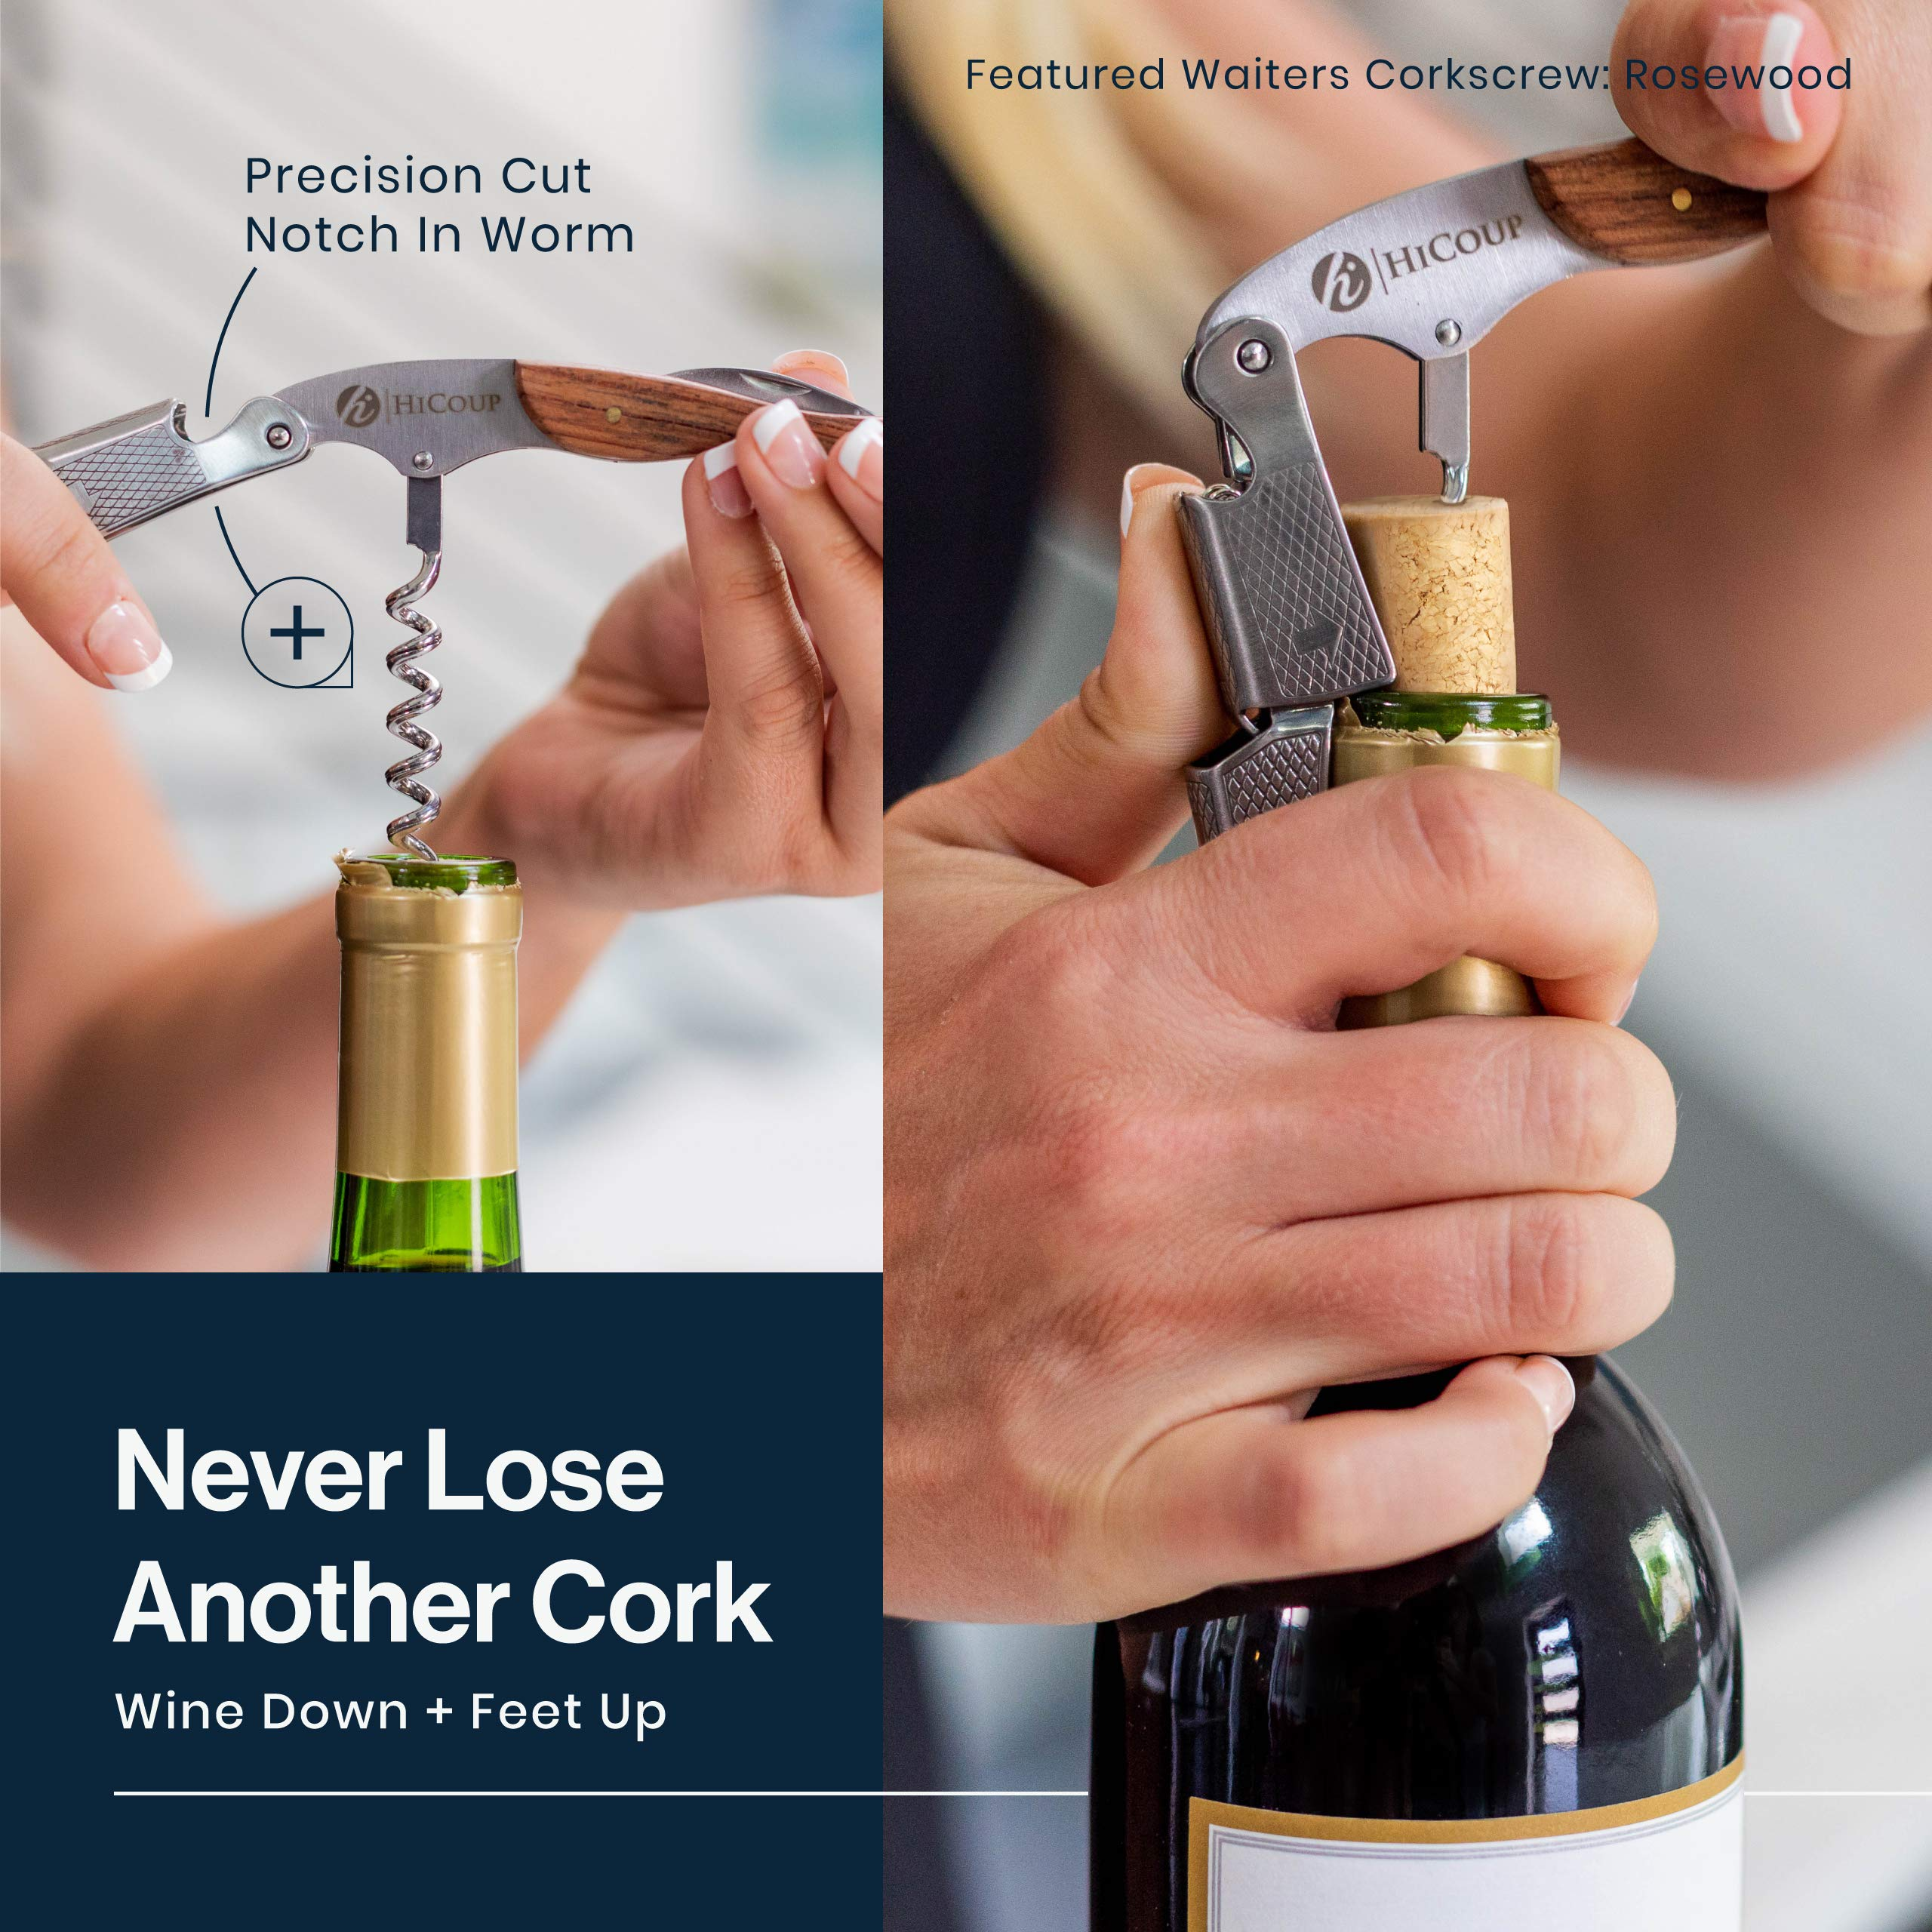 The Favored Choice of Sommeliers Waiters and Bartenders Around The World Professional Waiter/'s Corkscrew by HiCoup Bai Ying Wood Handle All-in-one Corkscrew Bottle Opener and Foil Cutter